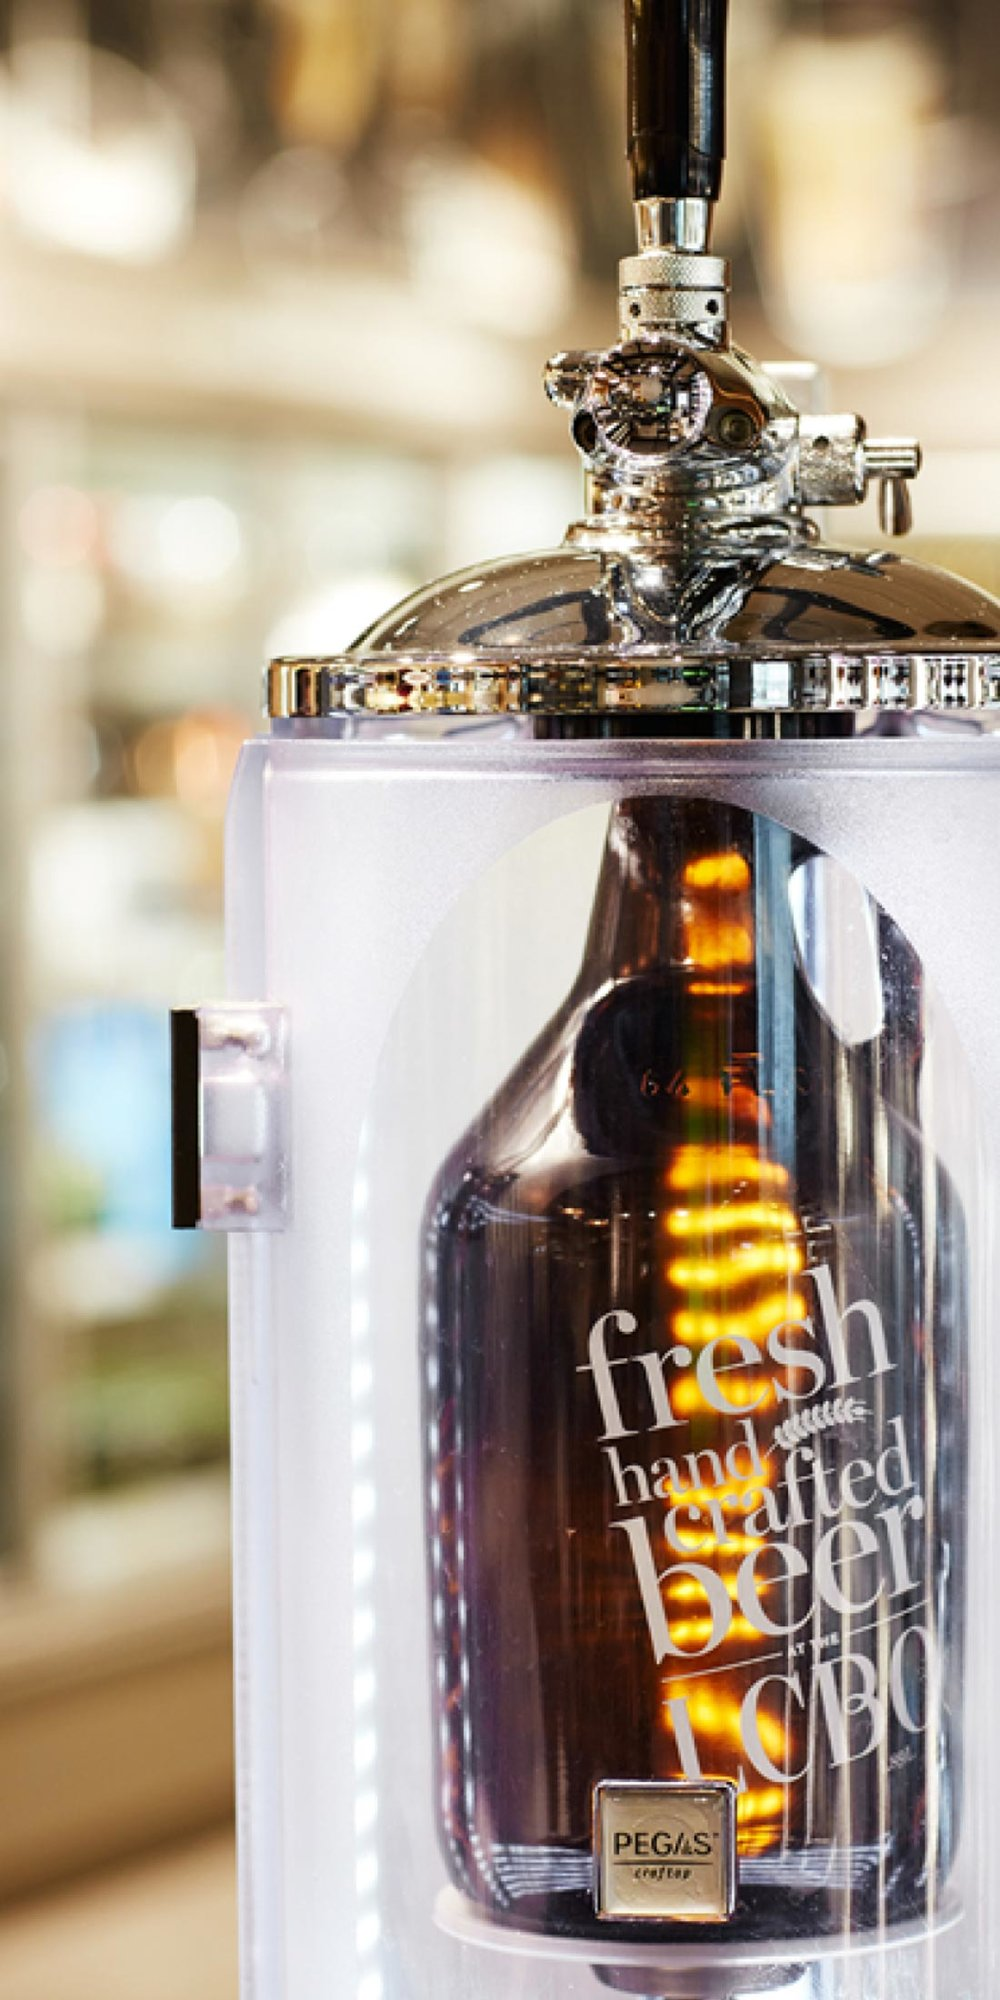 lcbo-station-growler-ads-beer-keg-sputnik-design-partners-toronto.jpg